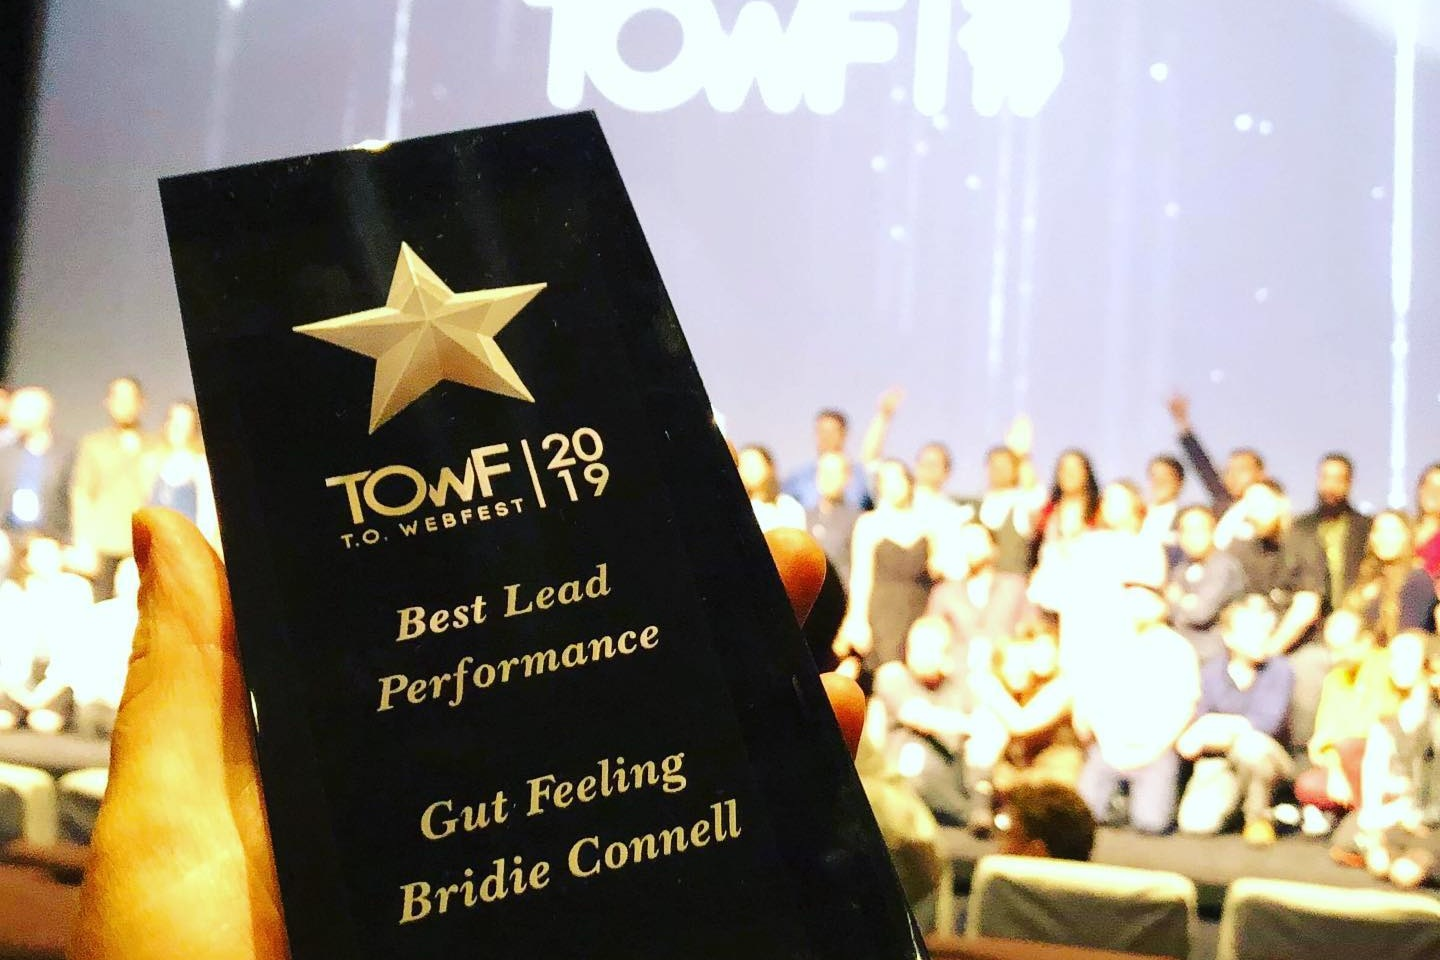 Best Lead Performance win for Bridie Connell in Toronto - LEARN MORE